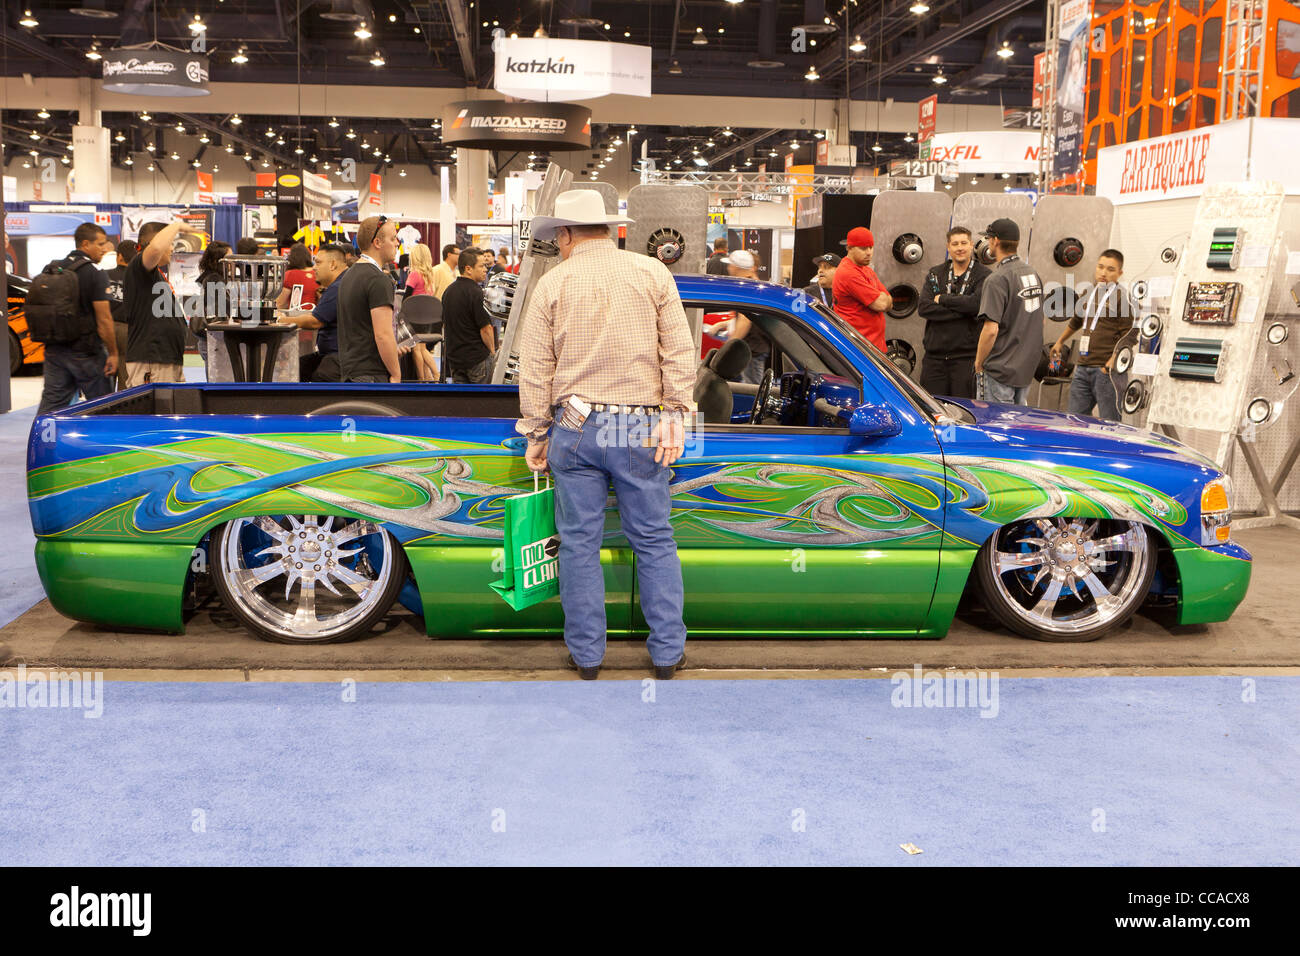 A man viewing a low rider pick-up truck rebuild on display at car show - Stock Image